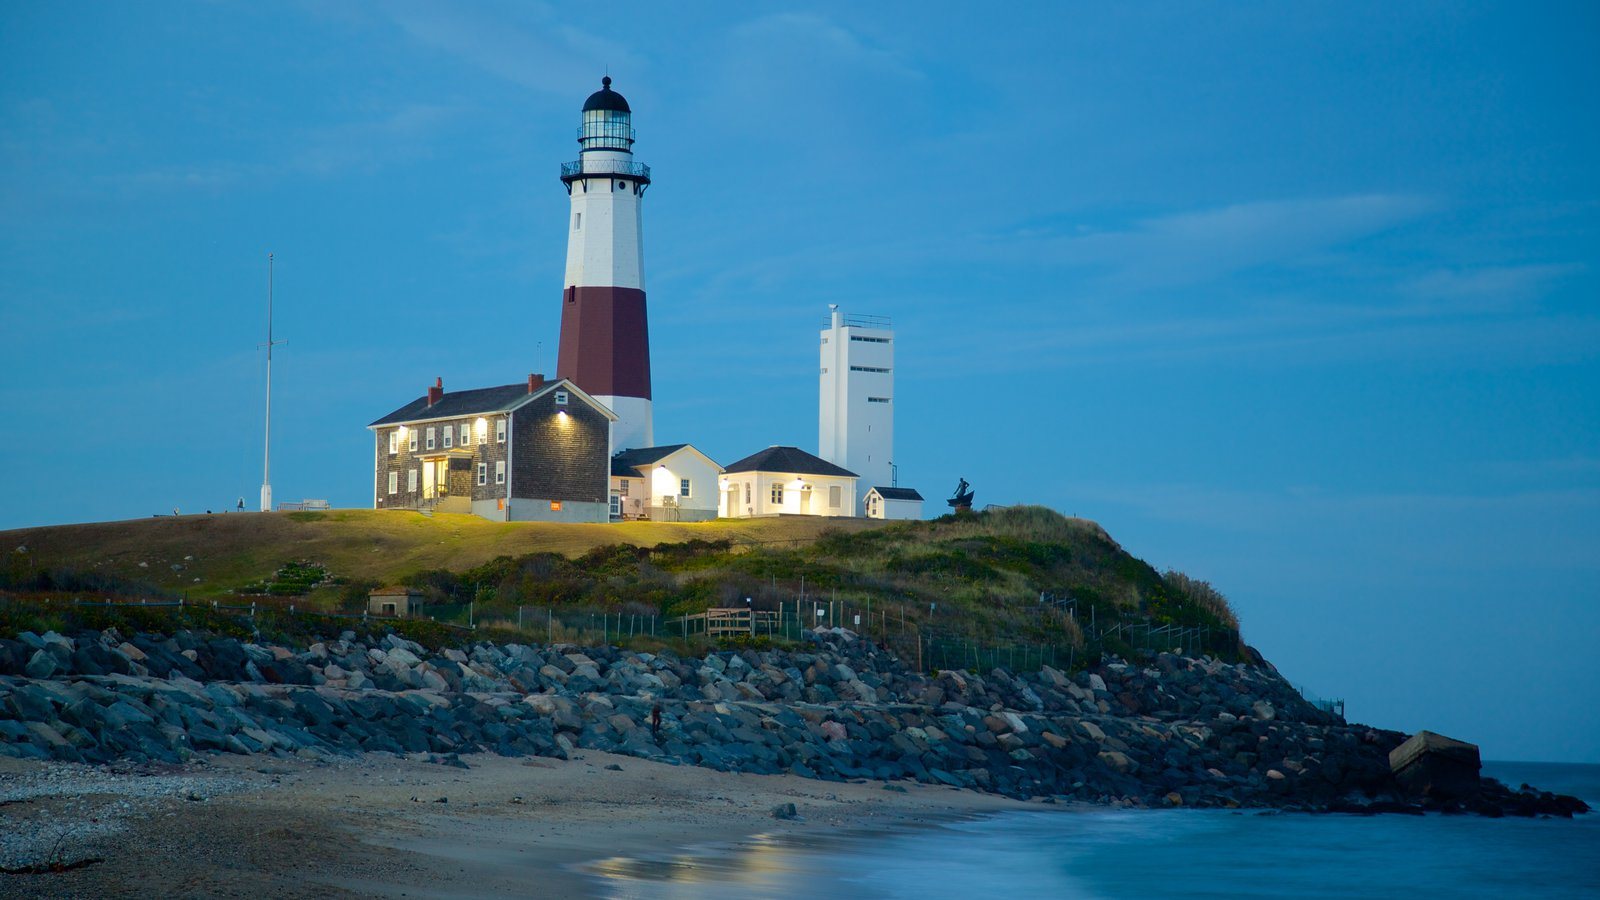 Pictures of montauk point